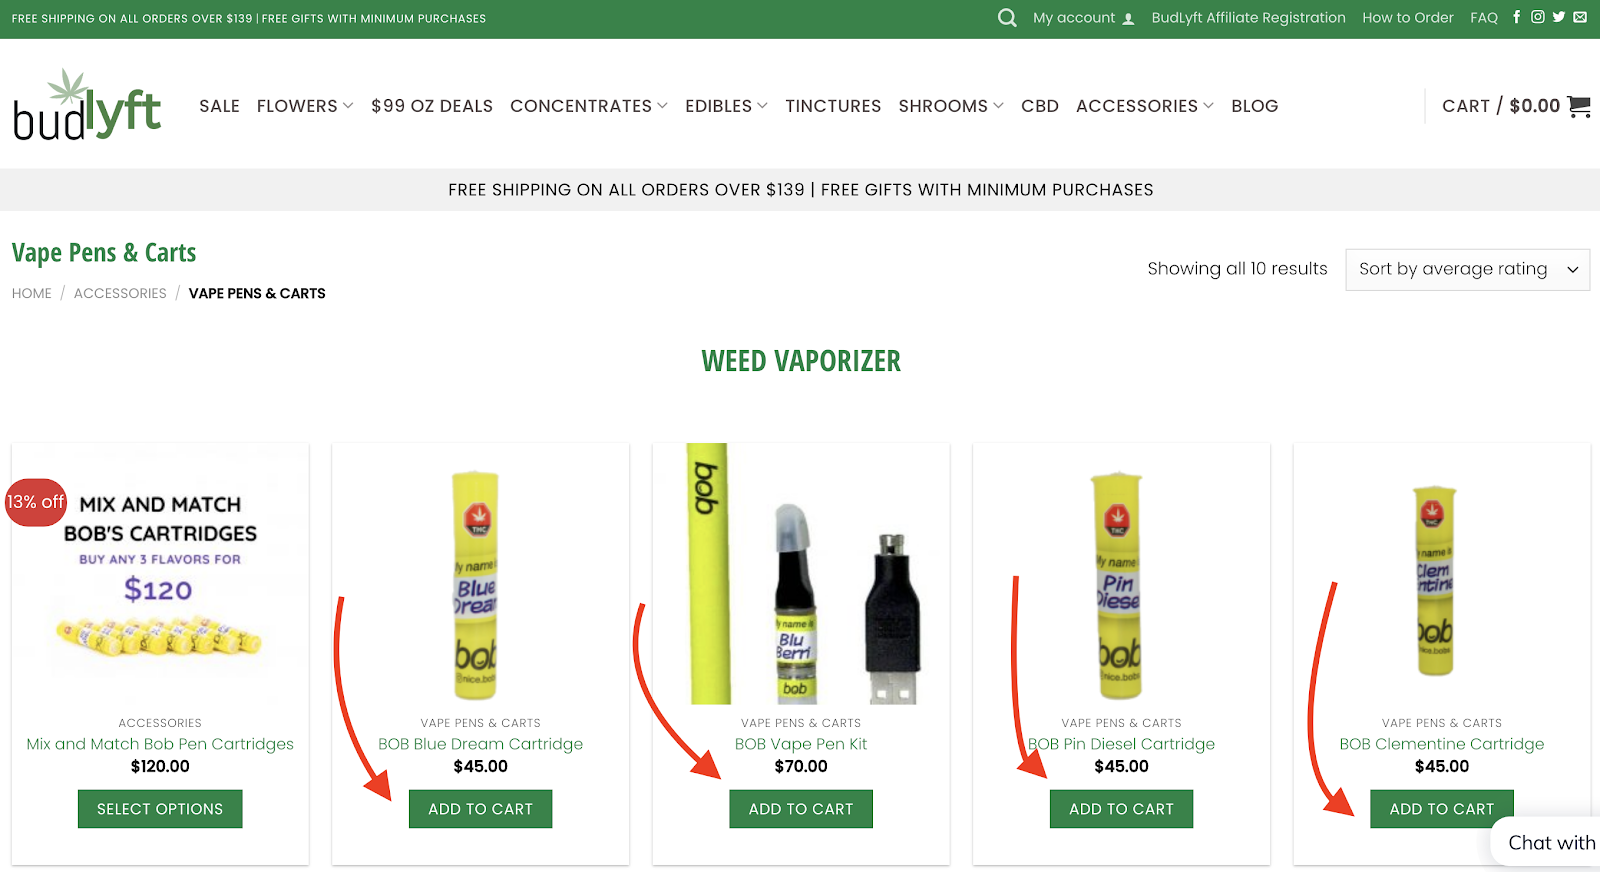 Buy Weed Online - Add to Cart